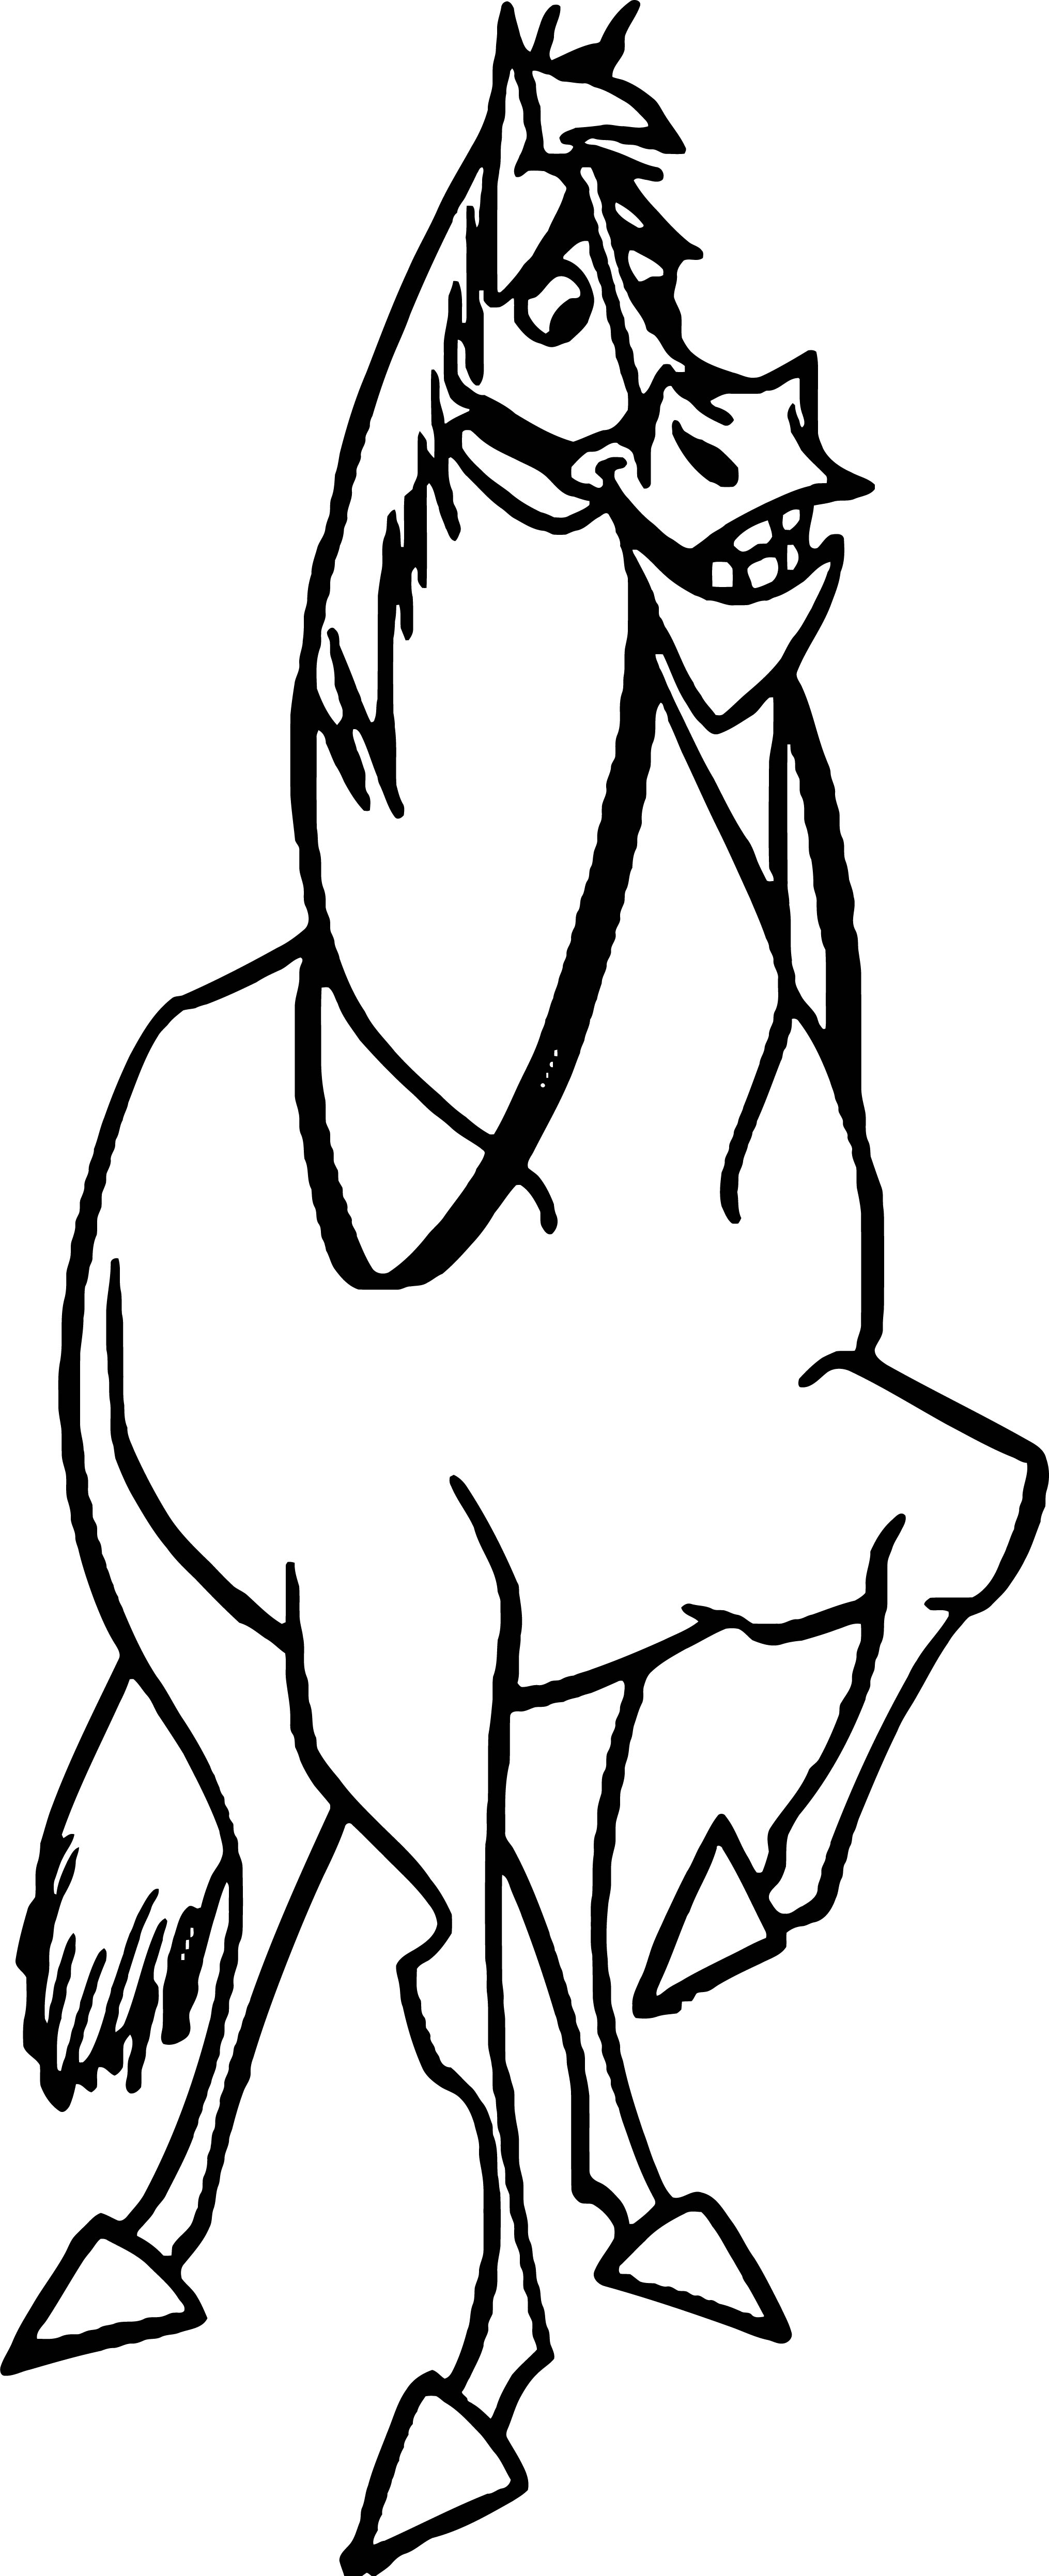 Home On The Range Smile Horse Coloring Page